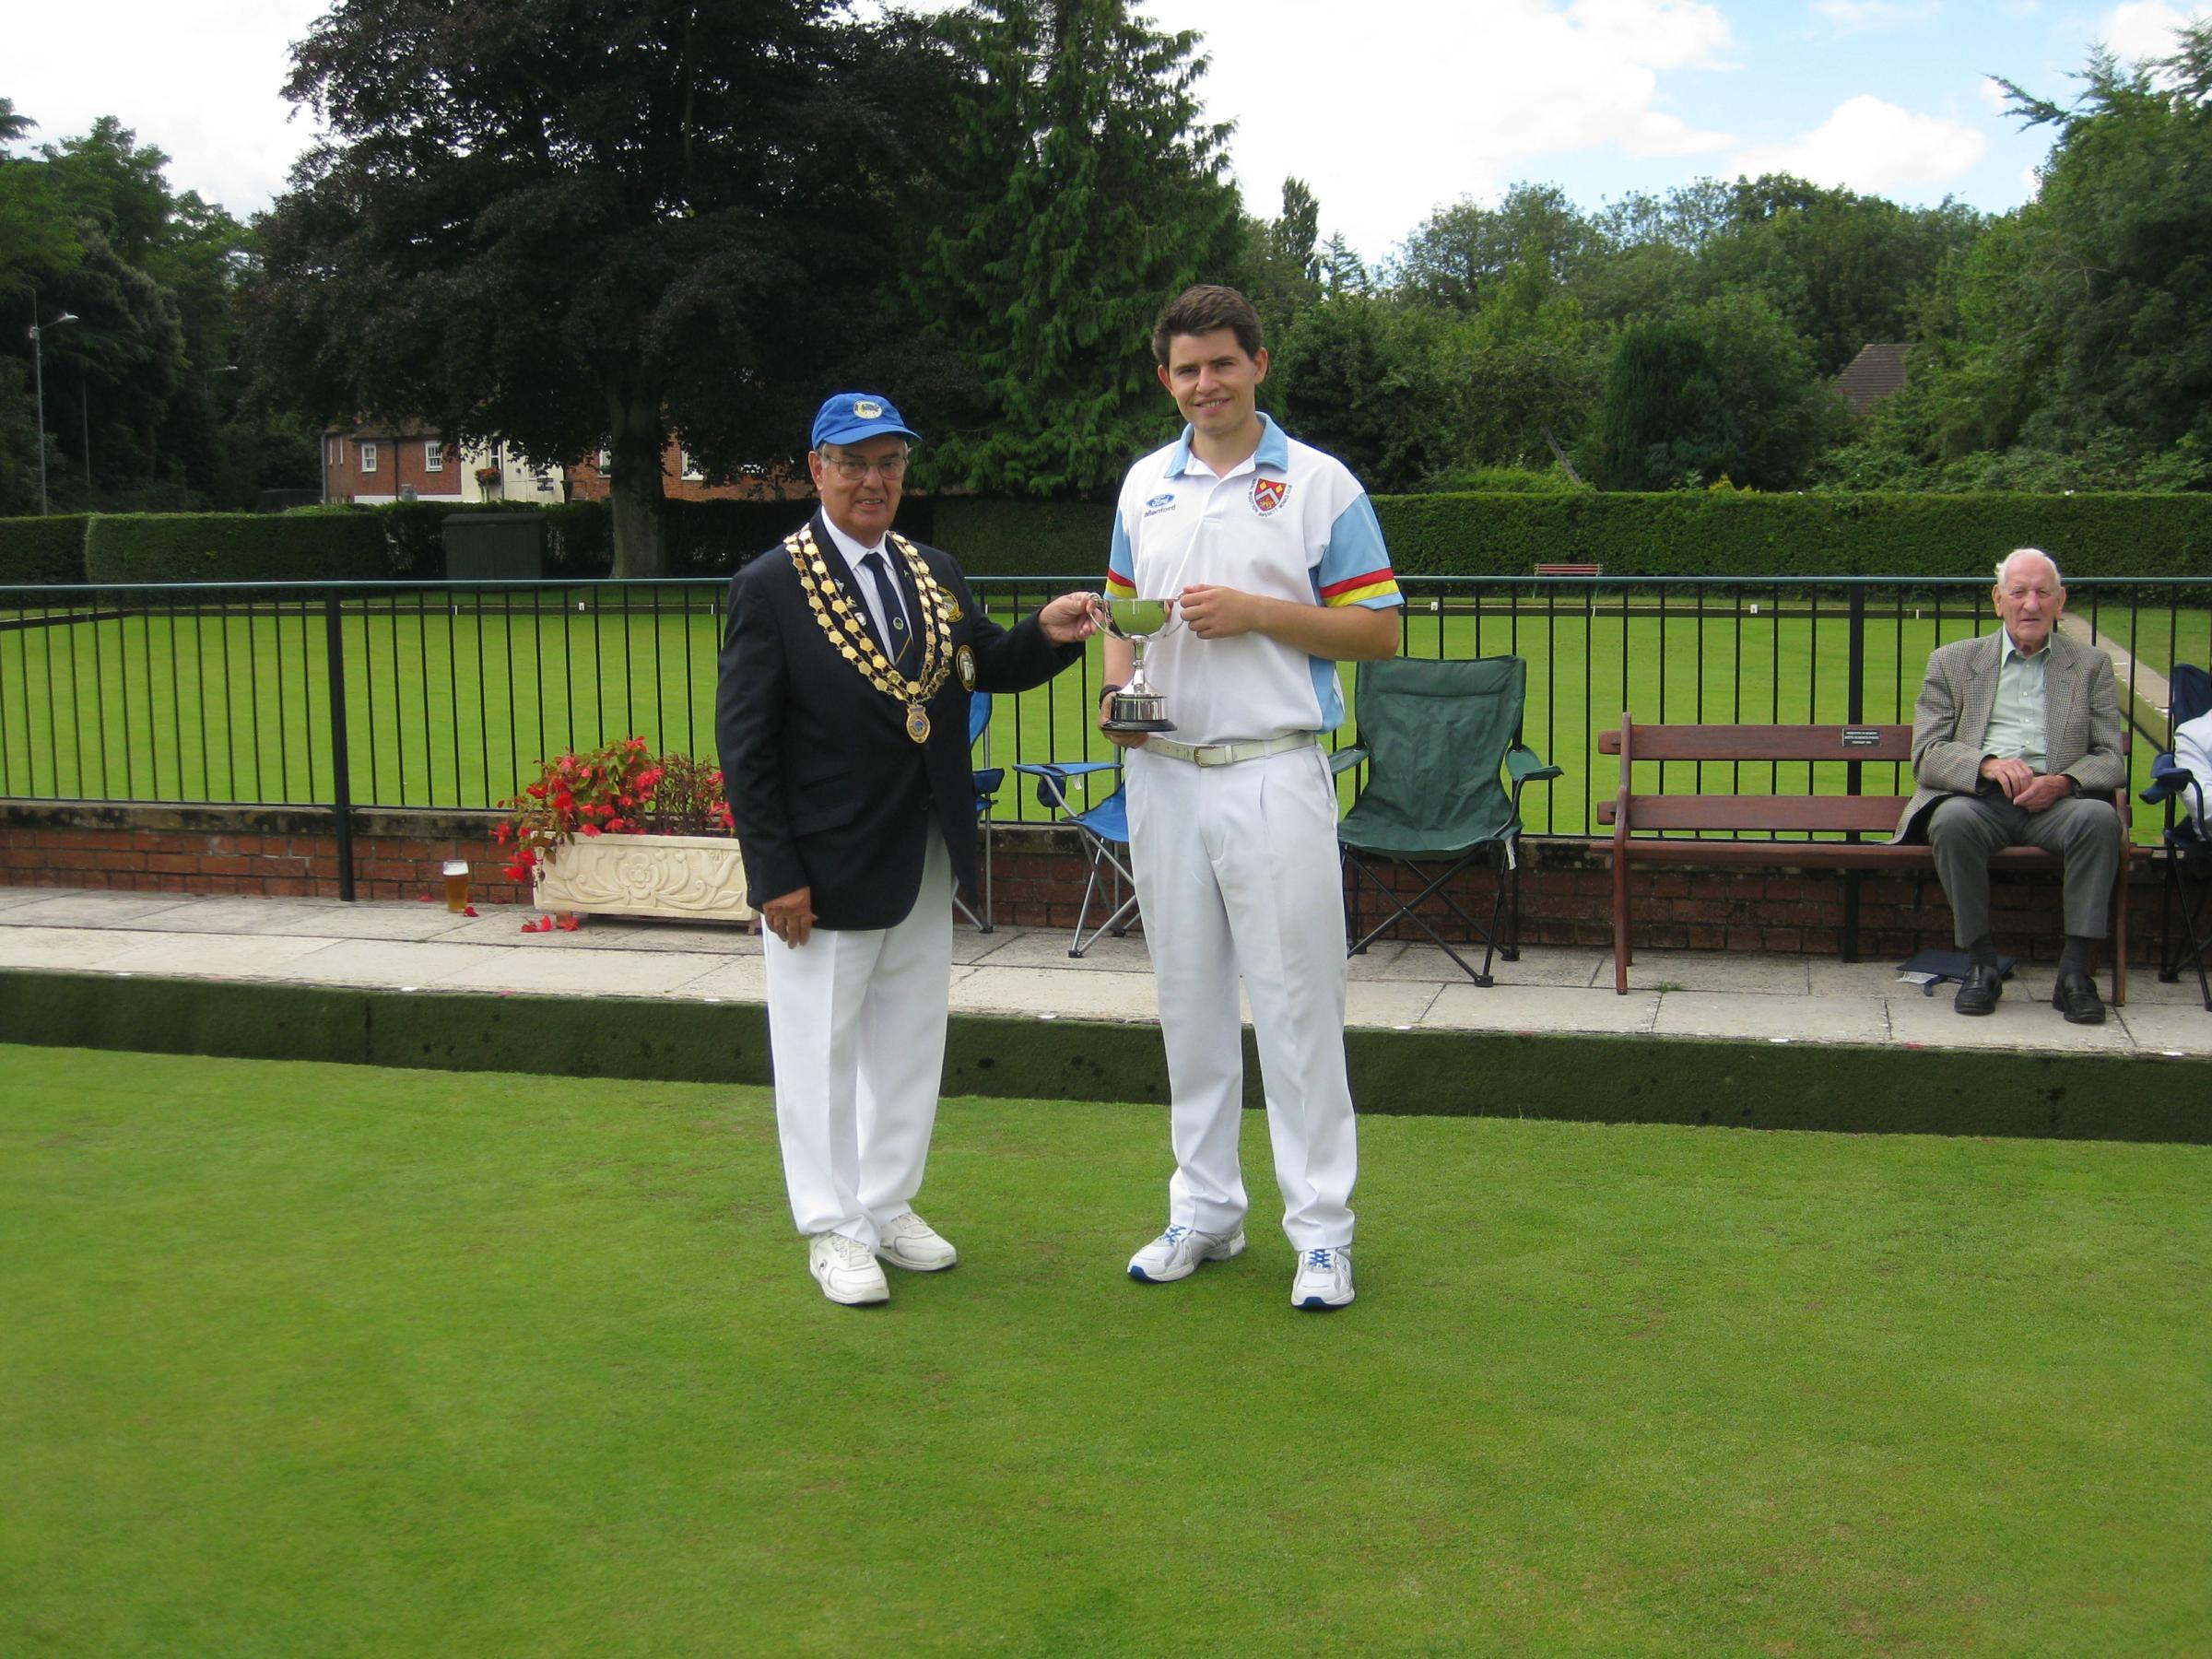 Royal Wootton Bassett's Kyle Anderson is crowned the Wiltshire U25 Singles champion